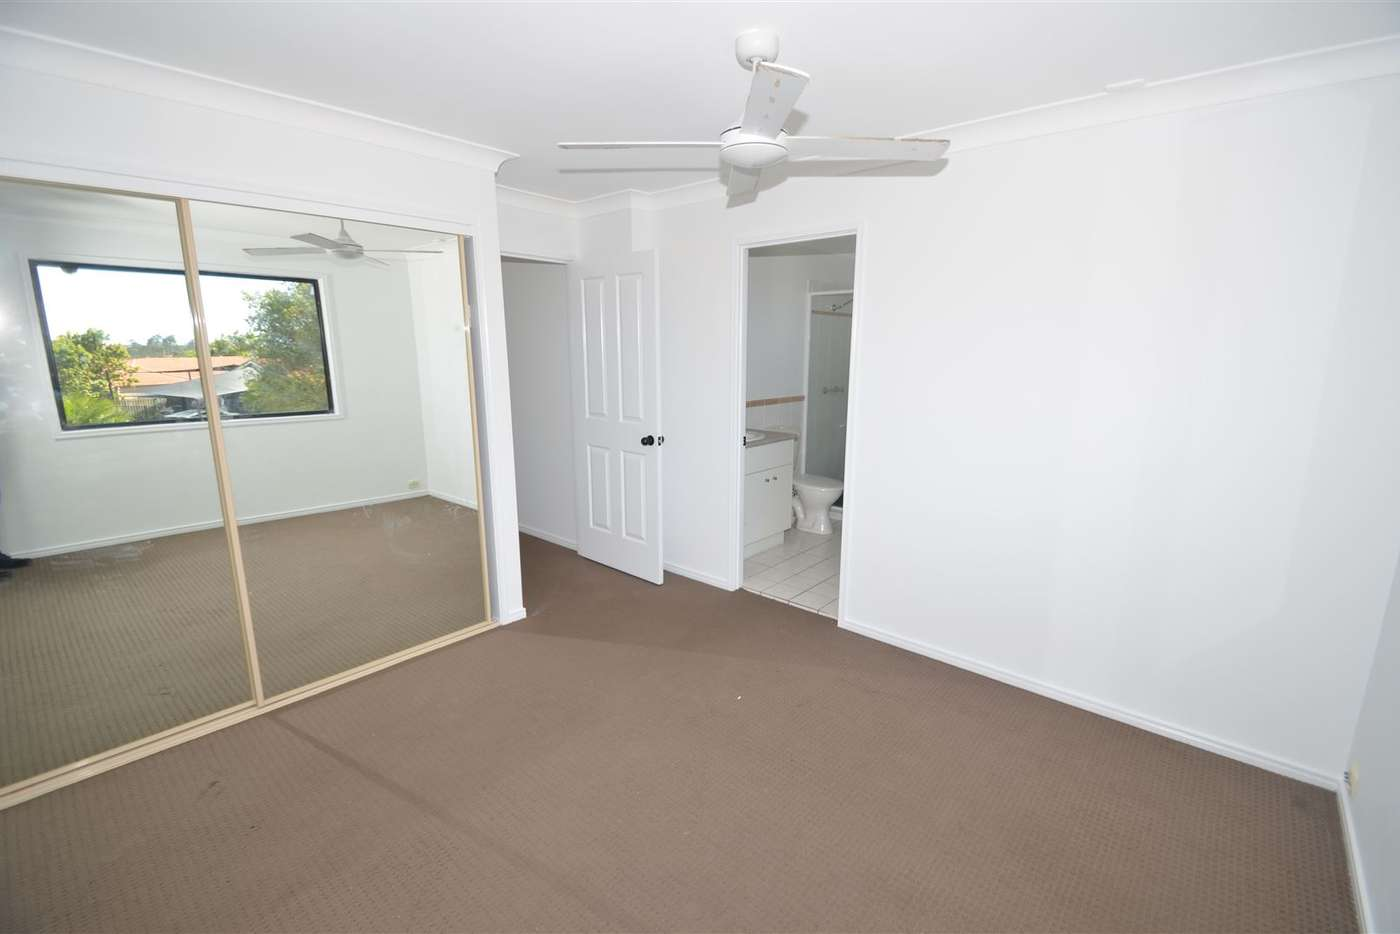 Seventh view of Homely house listing, 22 Greensborough Crescent, Parkwood QLD 4214